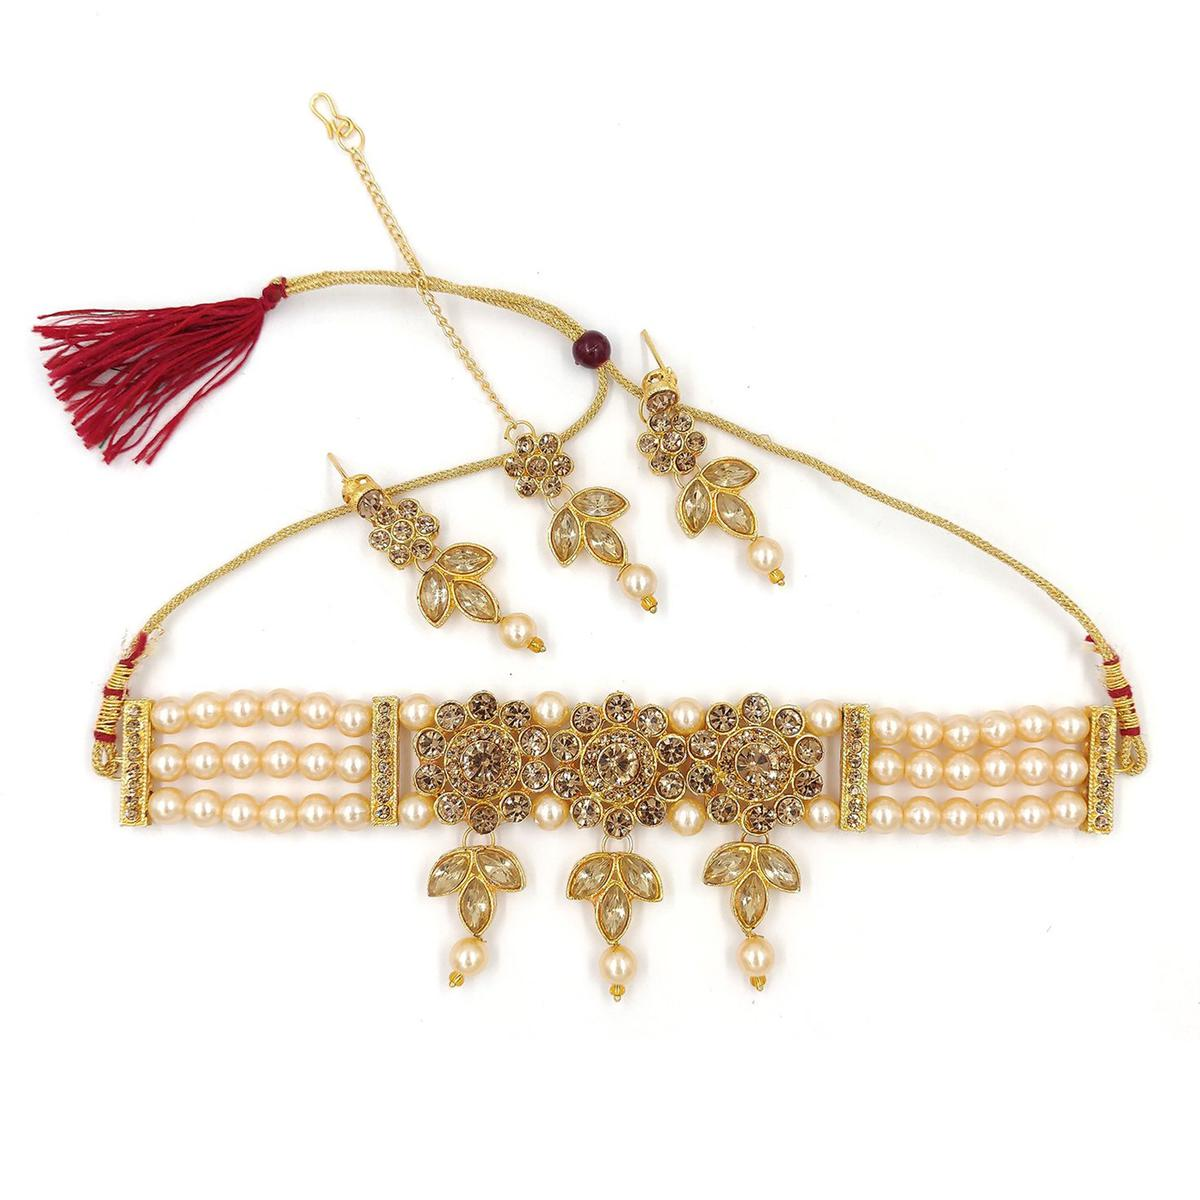 ZaffreCollections -  Stylish Multistrand Golden Beads Choker Necklace with Maang Tikka for Women and Girls